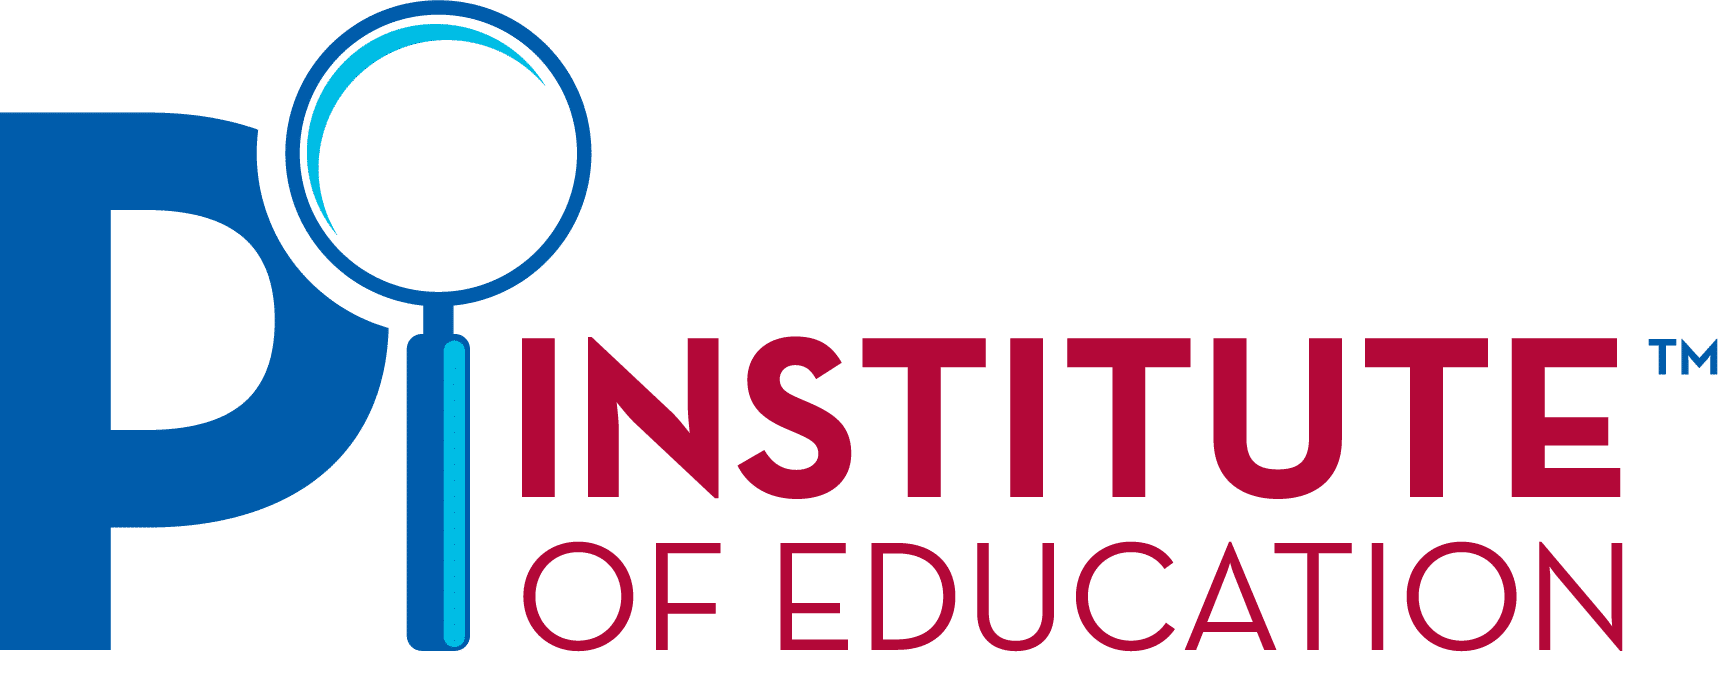 PI Institute of Education Logo - Private Investigator Continuing Education